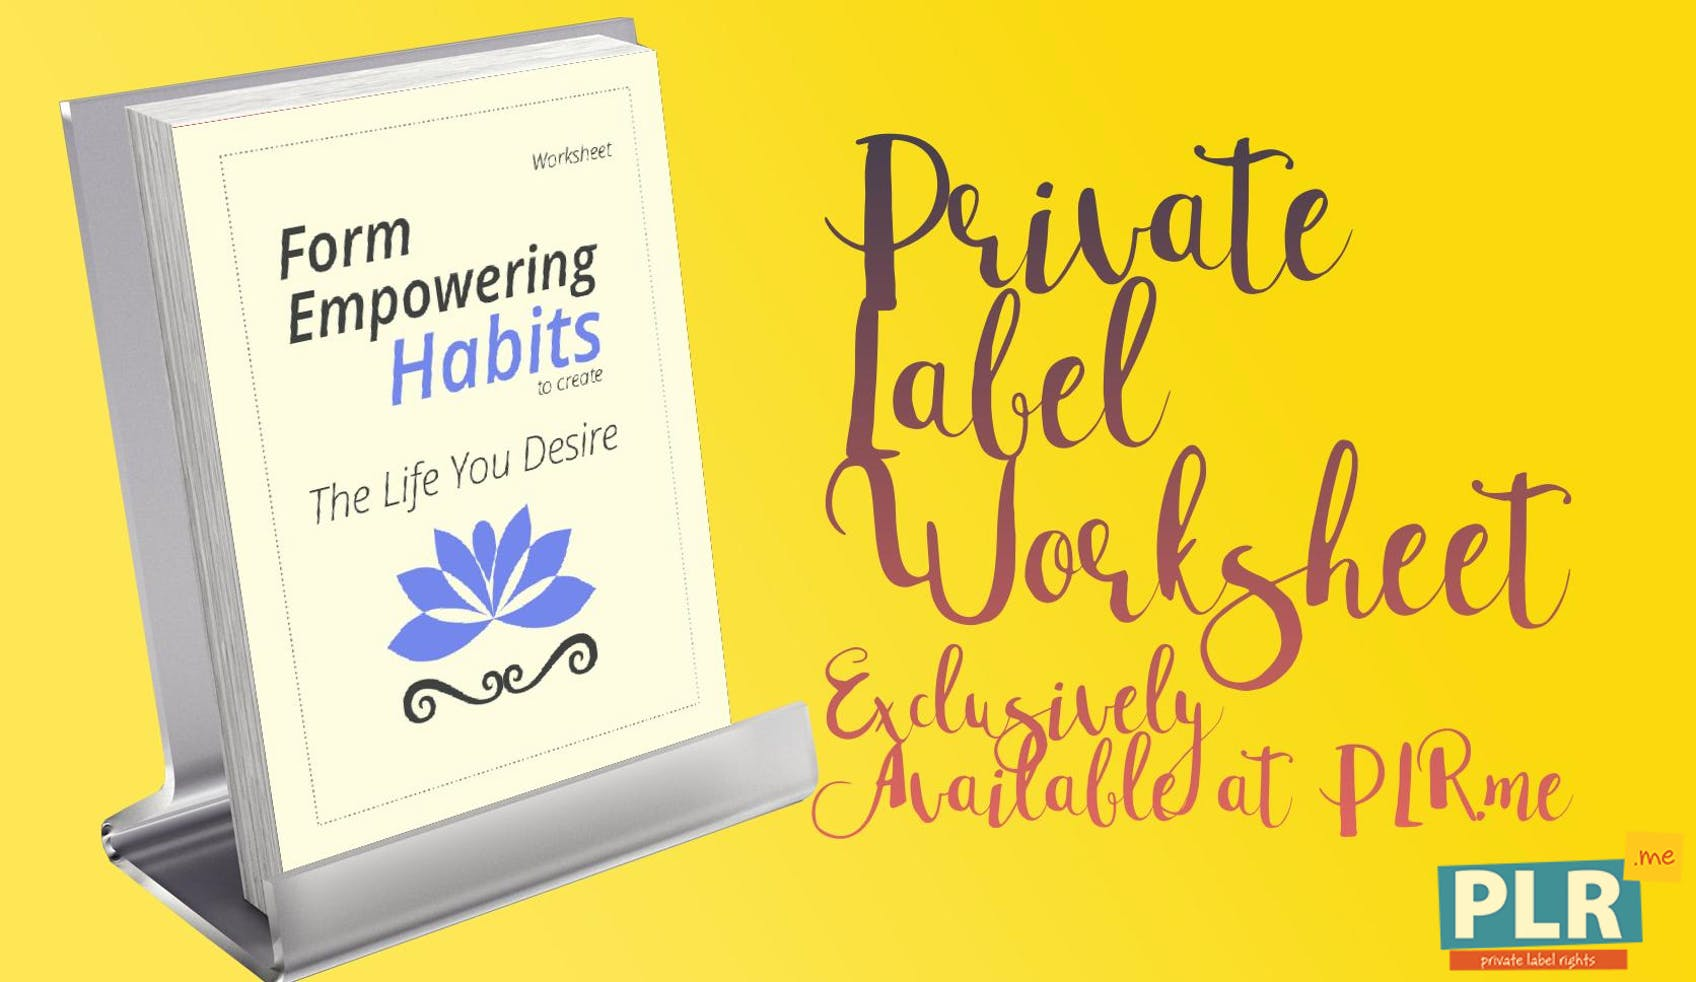 Form Empowering Habits To Create The Life You Desire Worksheet